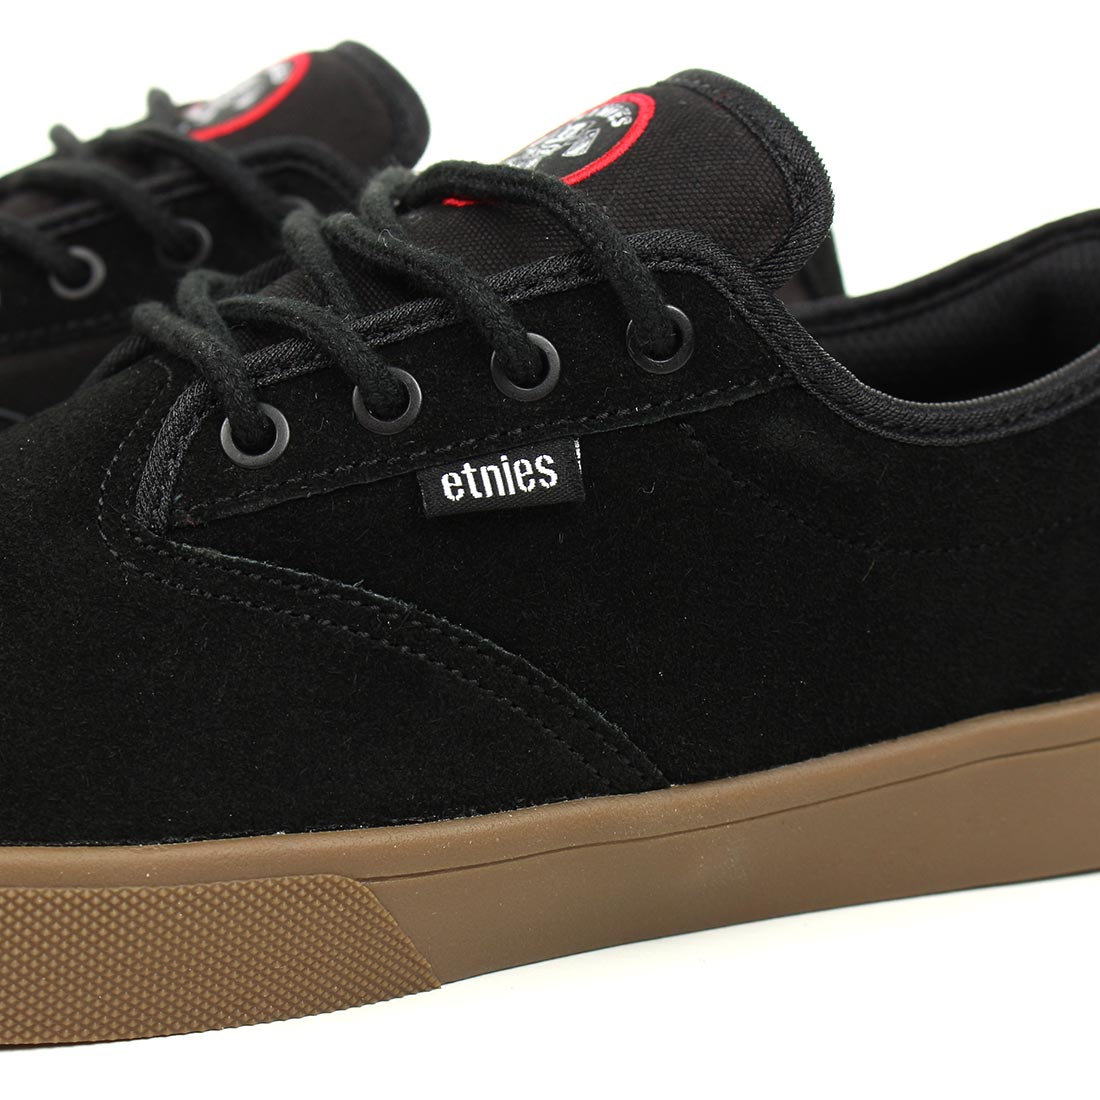 Etnies Shoes Jameson SL x FLiP Black Gum Matt Berger RRP 99 Skateboard Sneakers